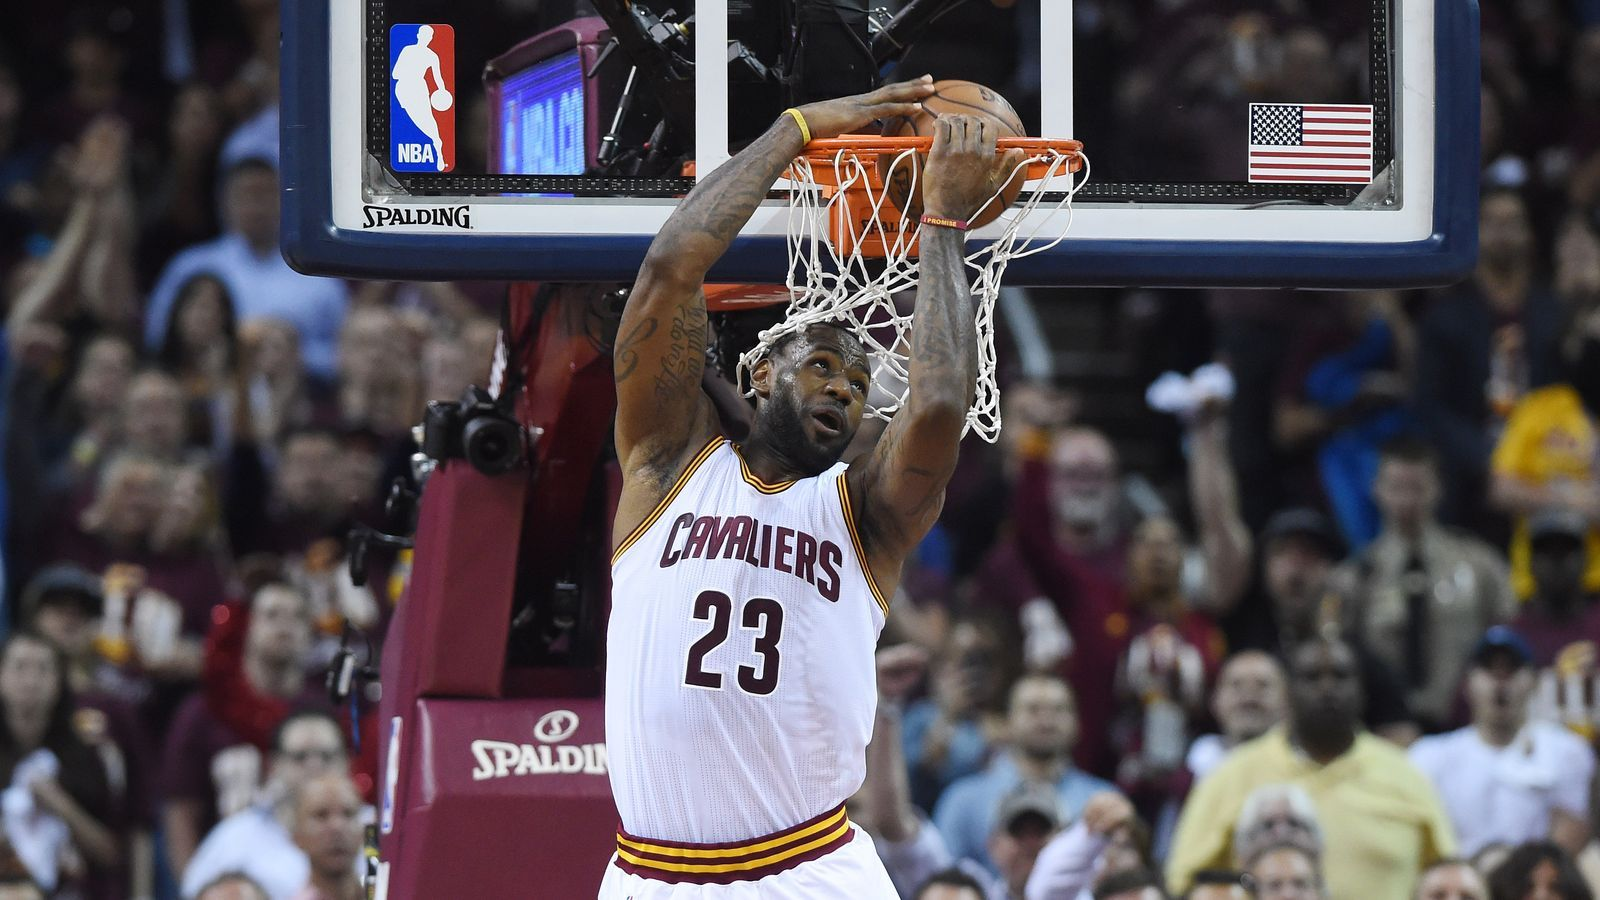 Cavs breathe life into NBA Finals with Game 3 rout Nba